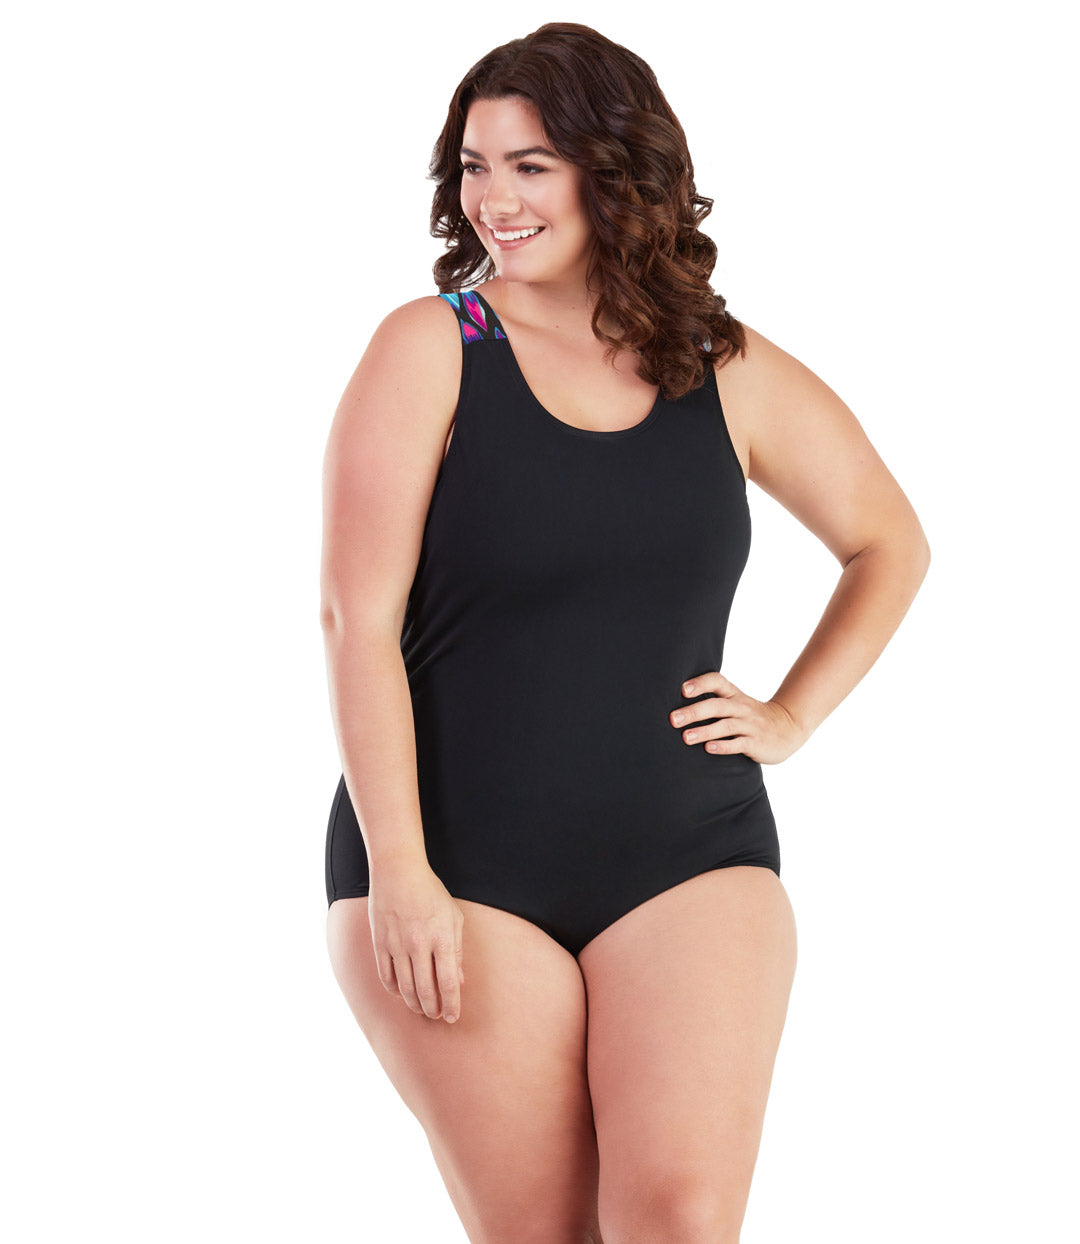 AquaSport Crossback One Piece Swimsuit Mermaid Black-Plus Size Swimwear and Swim Separates-SFO Apparel-JunoActive